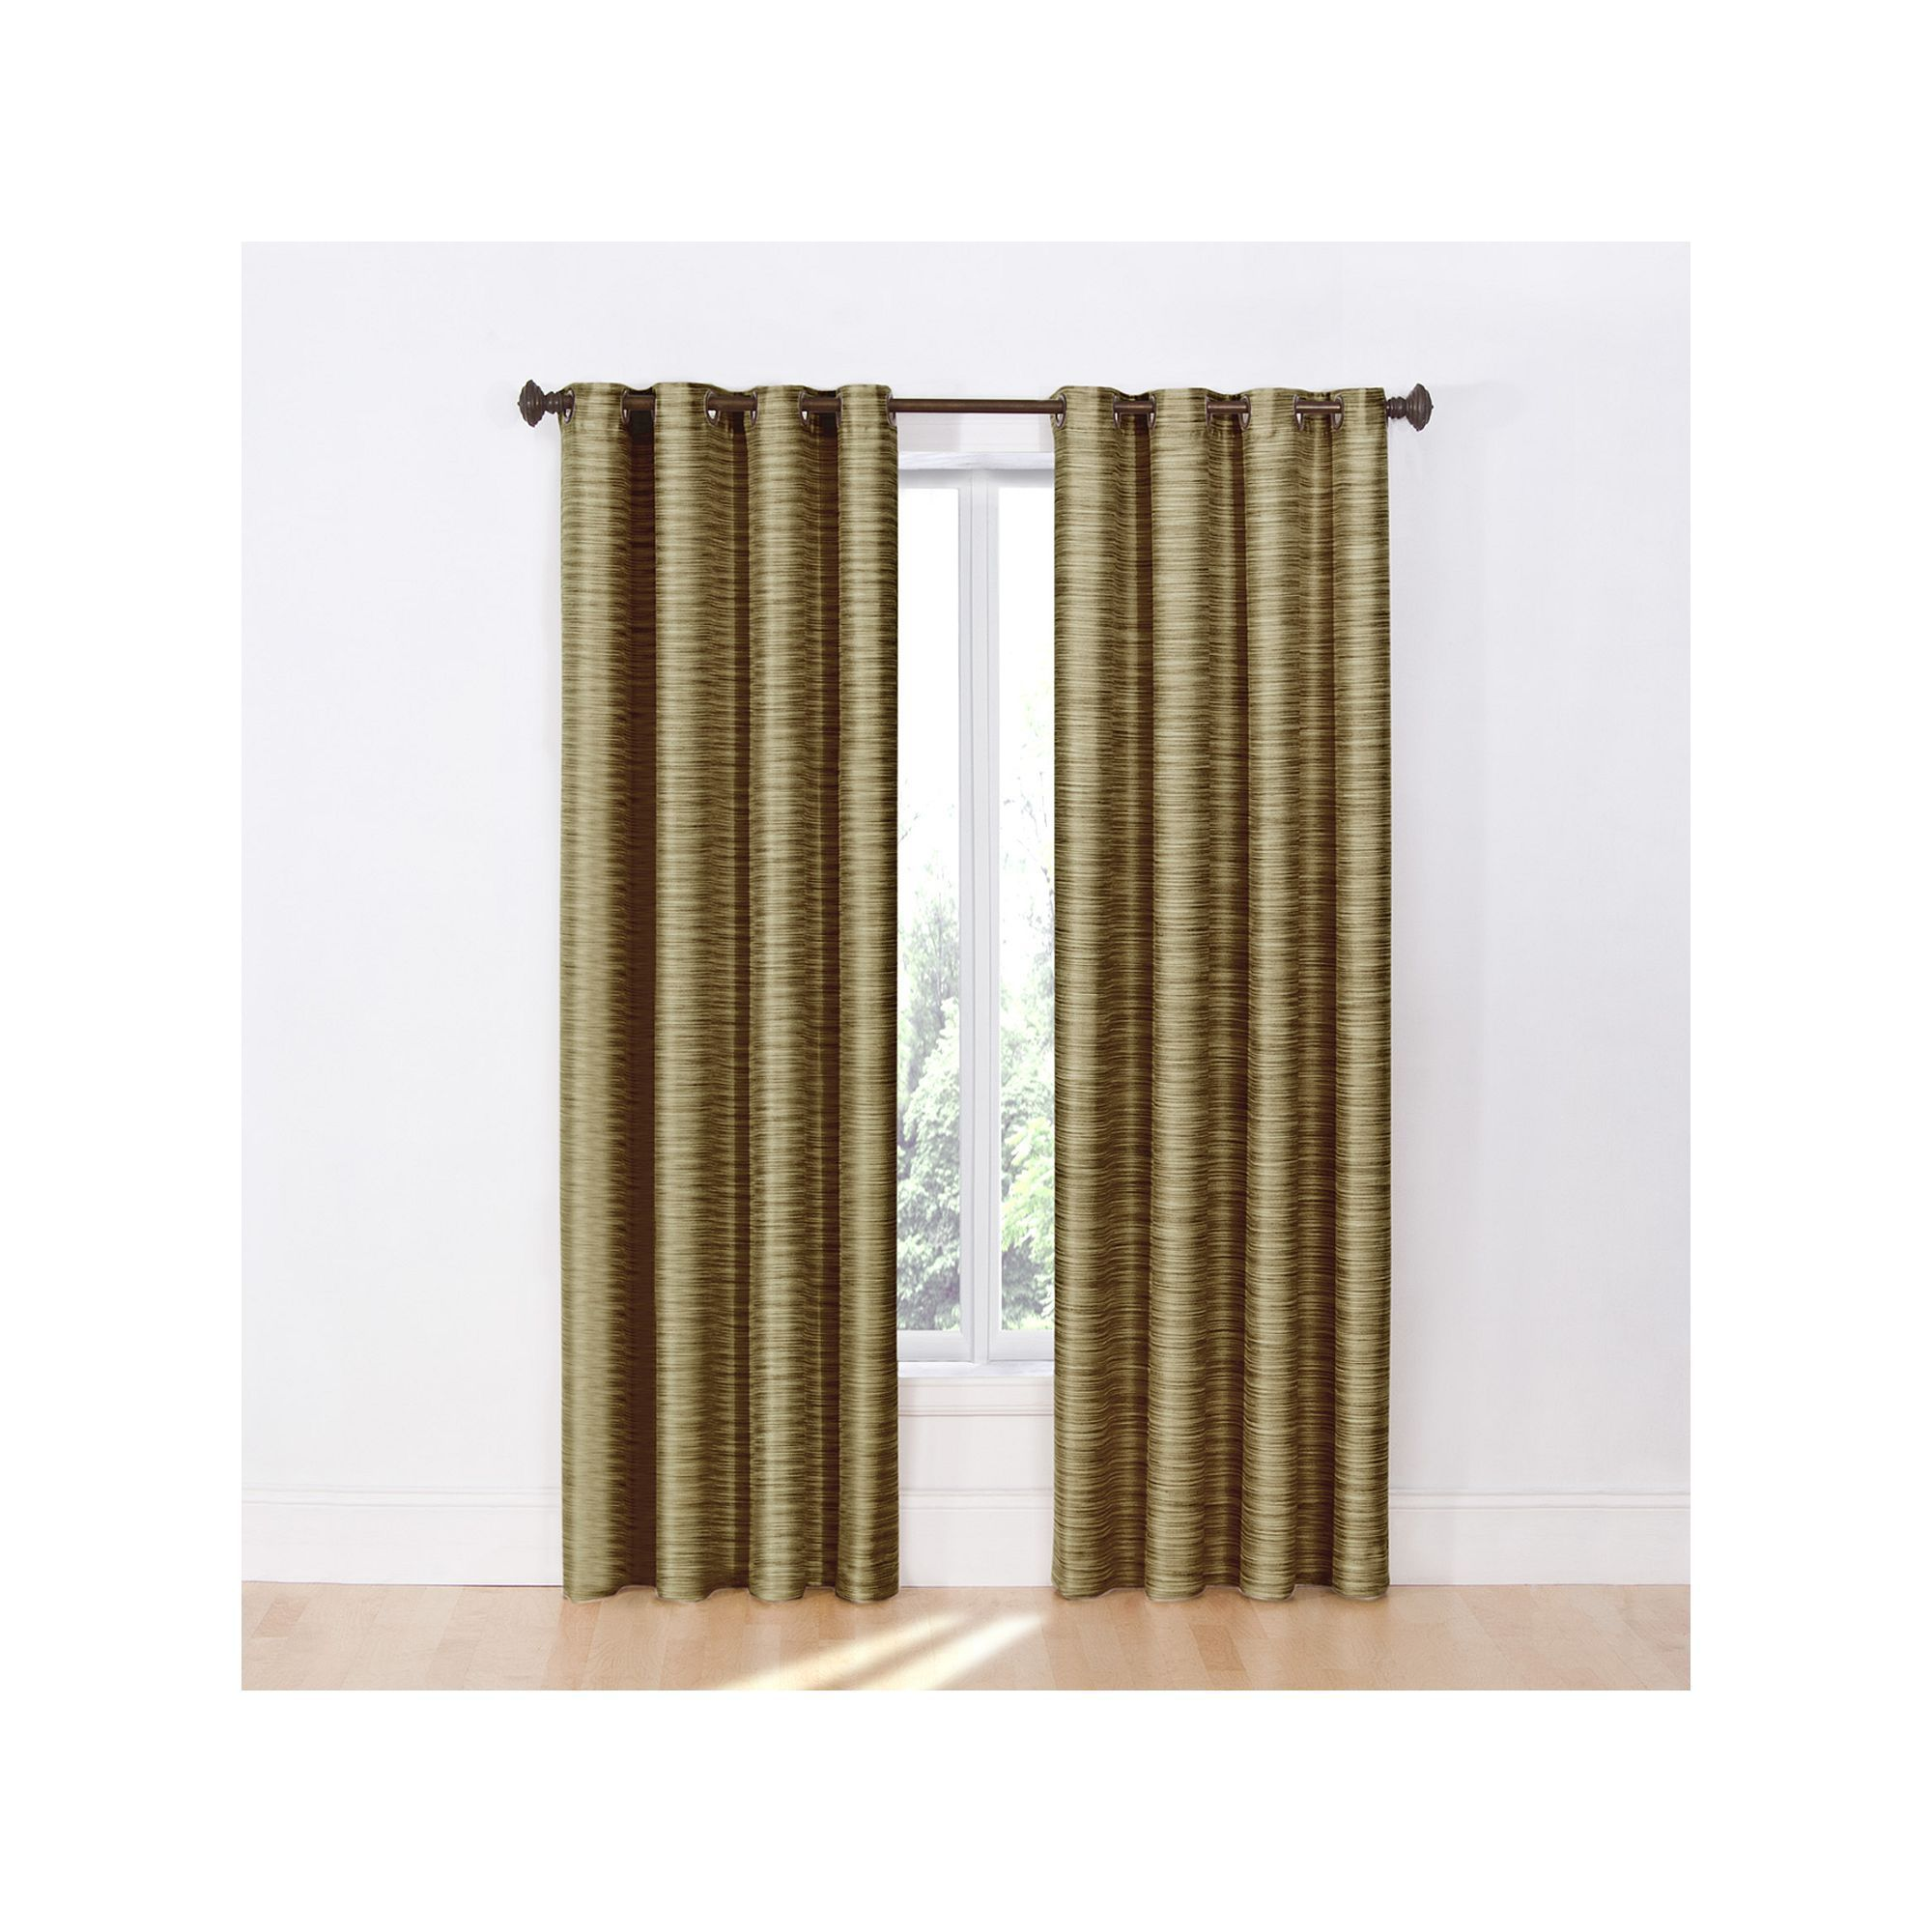 Eyebrow window coverings  eclipse dylan thermalayer blackout window curtain brown  thermal